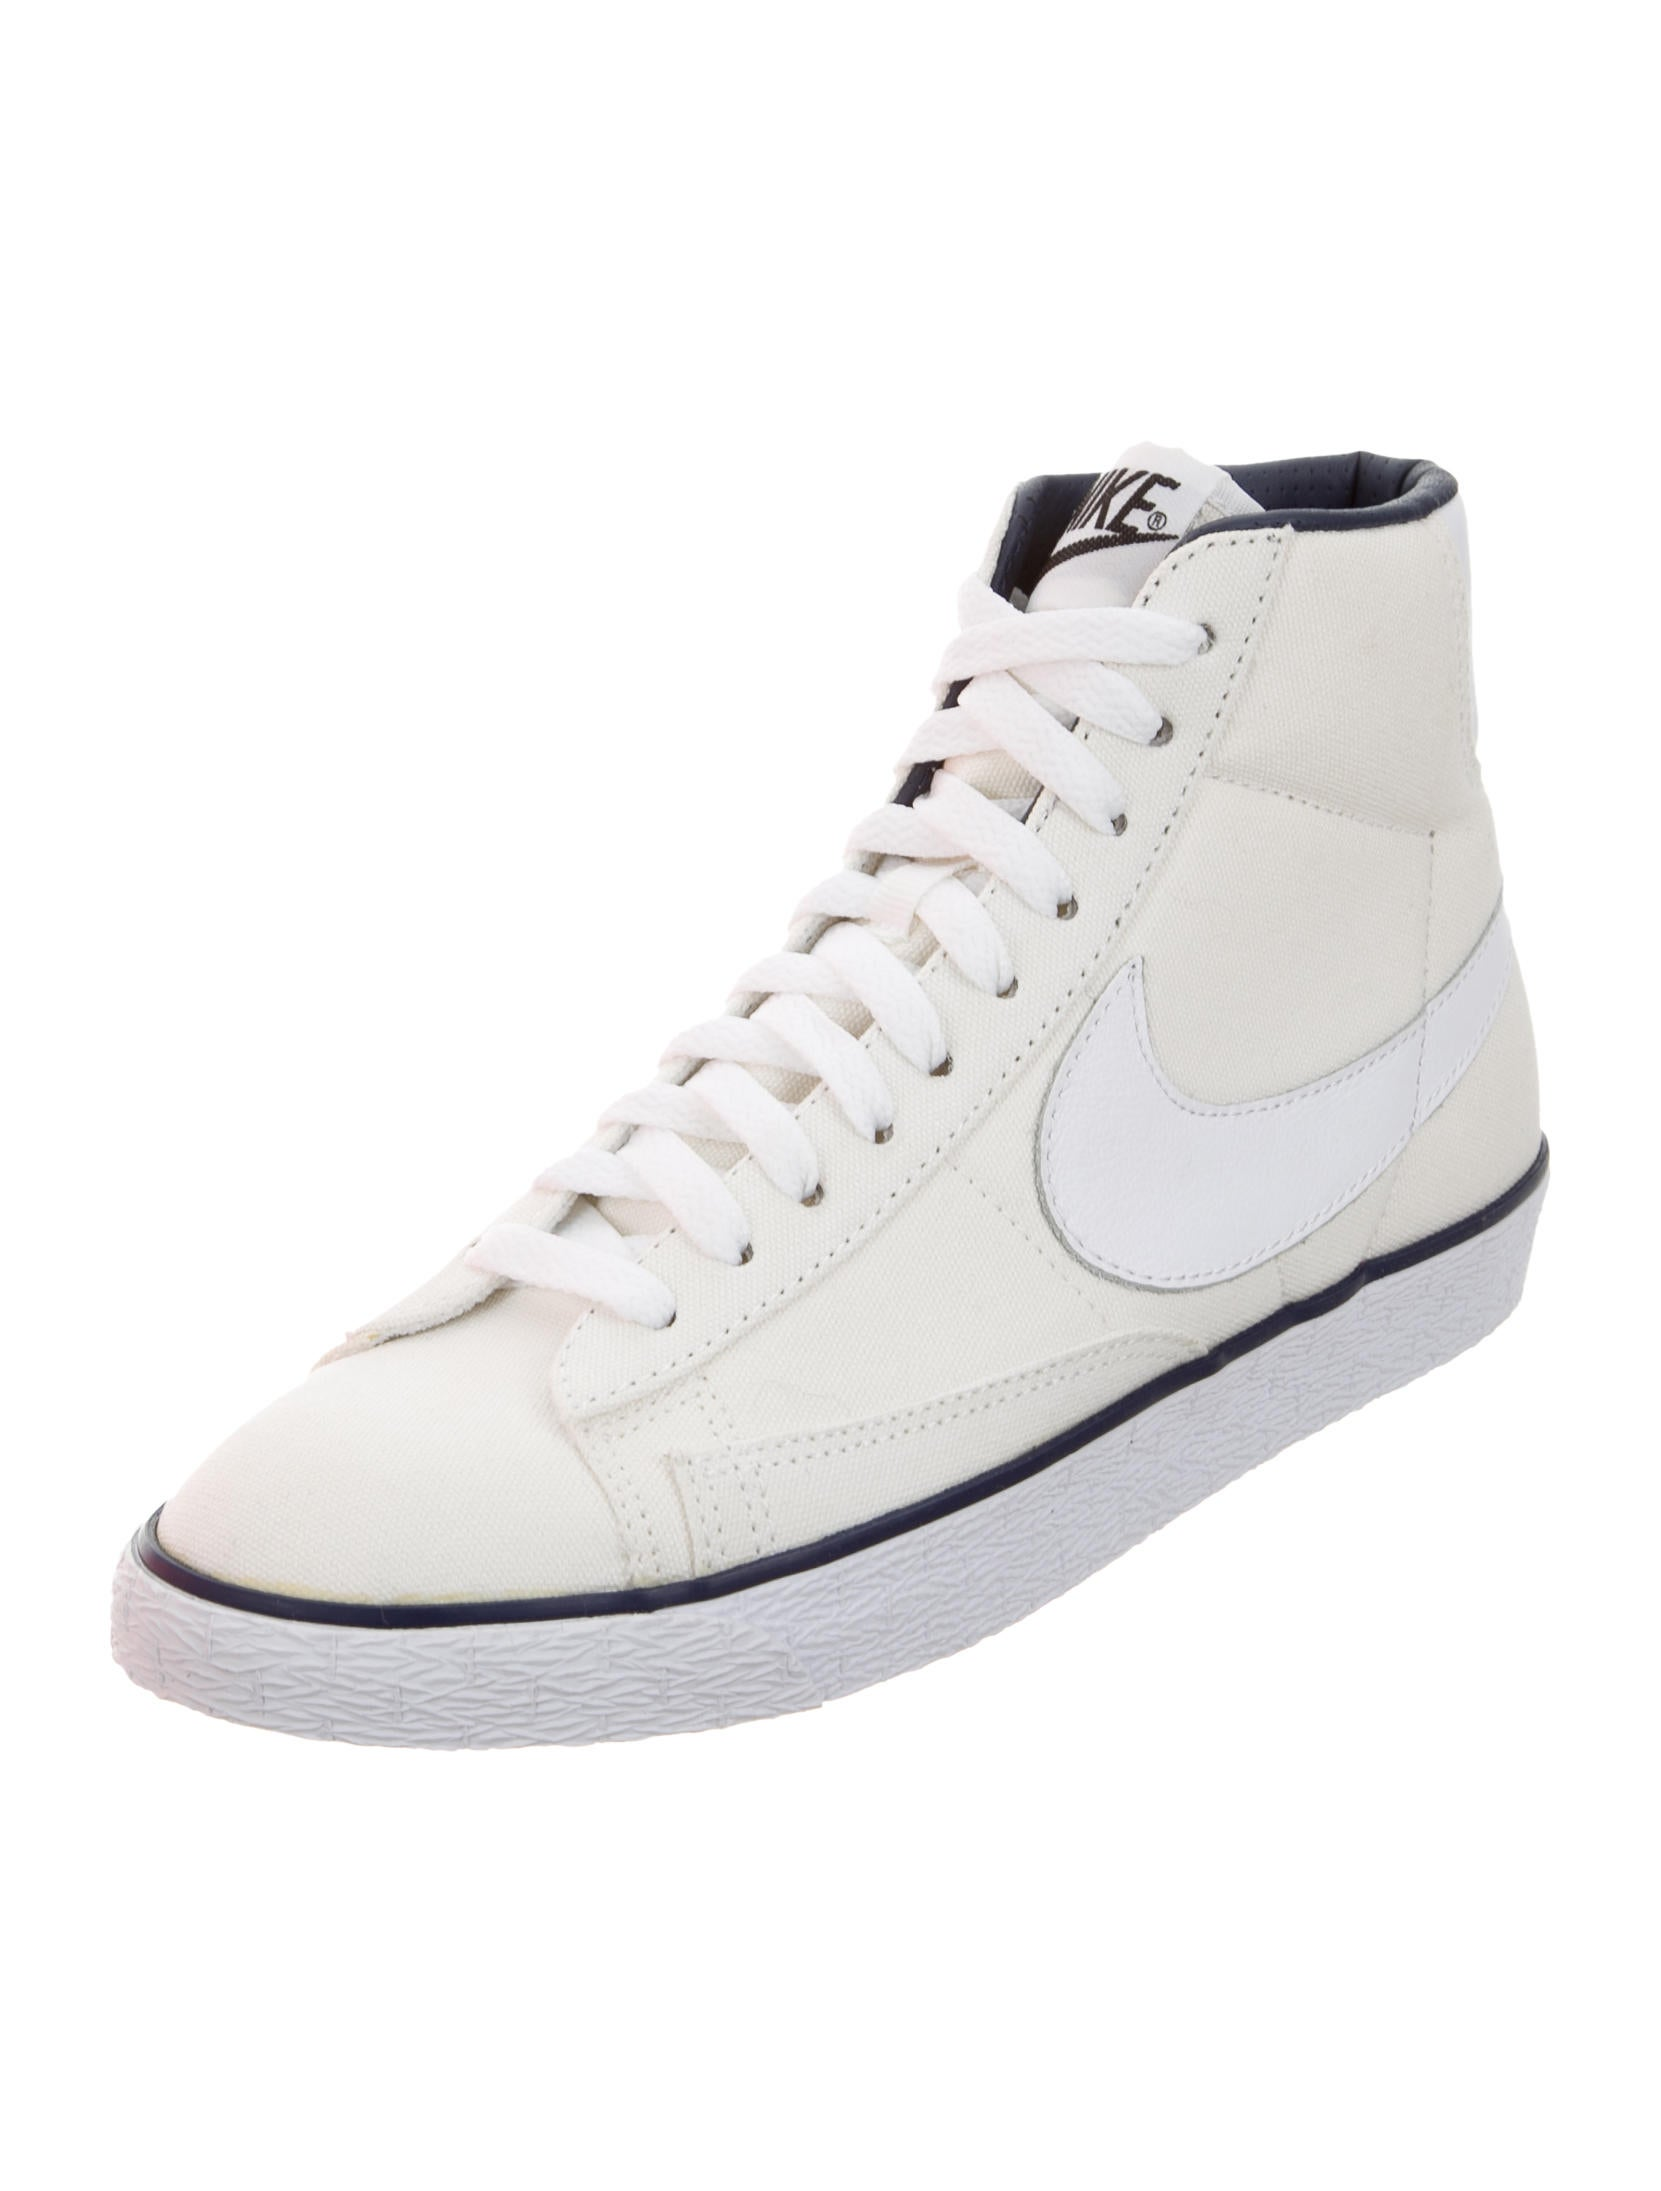 a p c x nike canvas high top sneakers w tags shoes